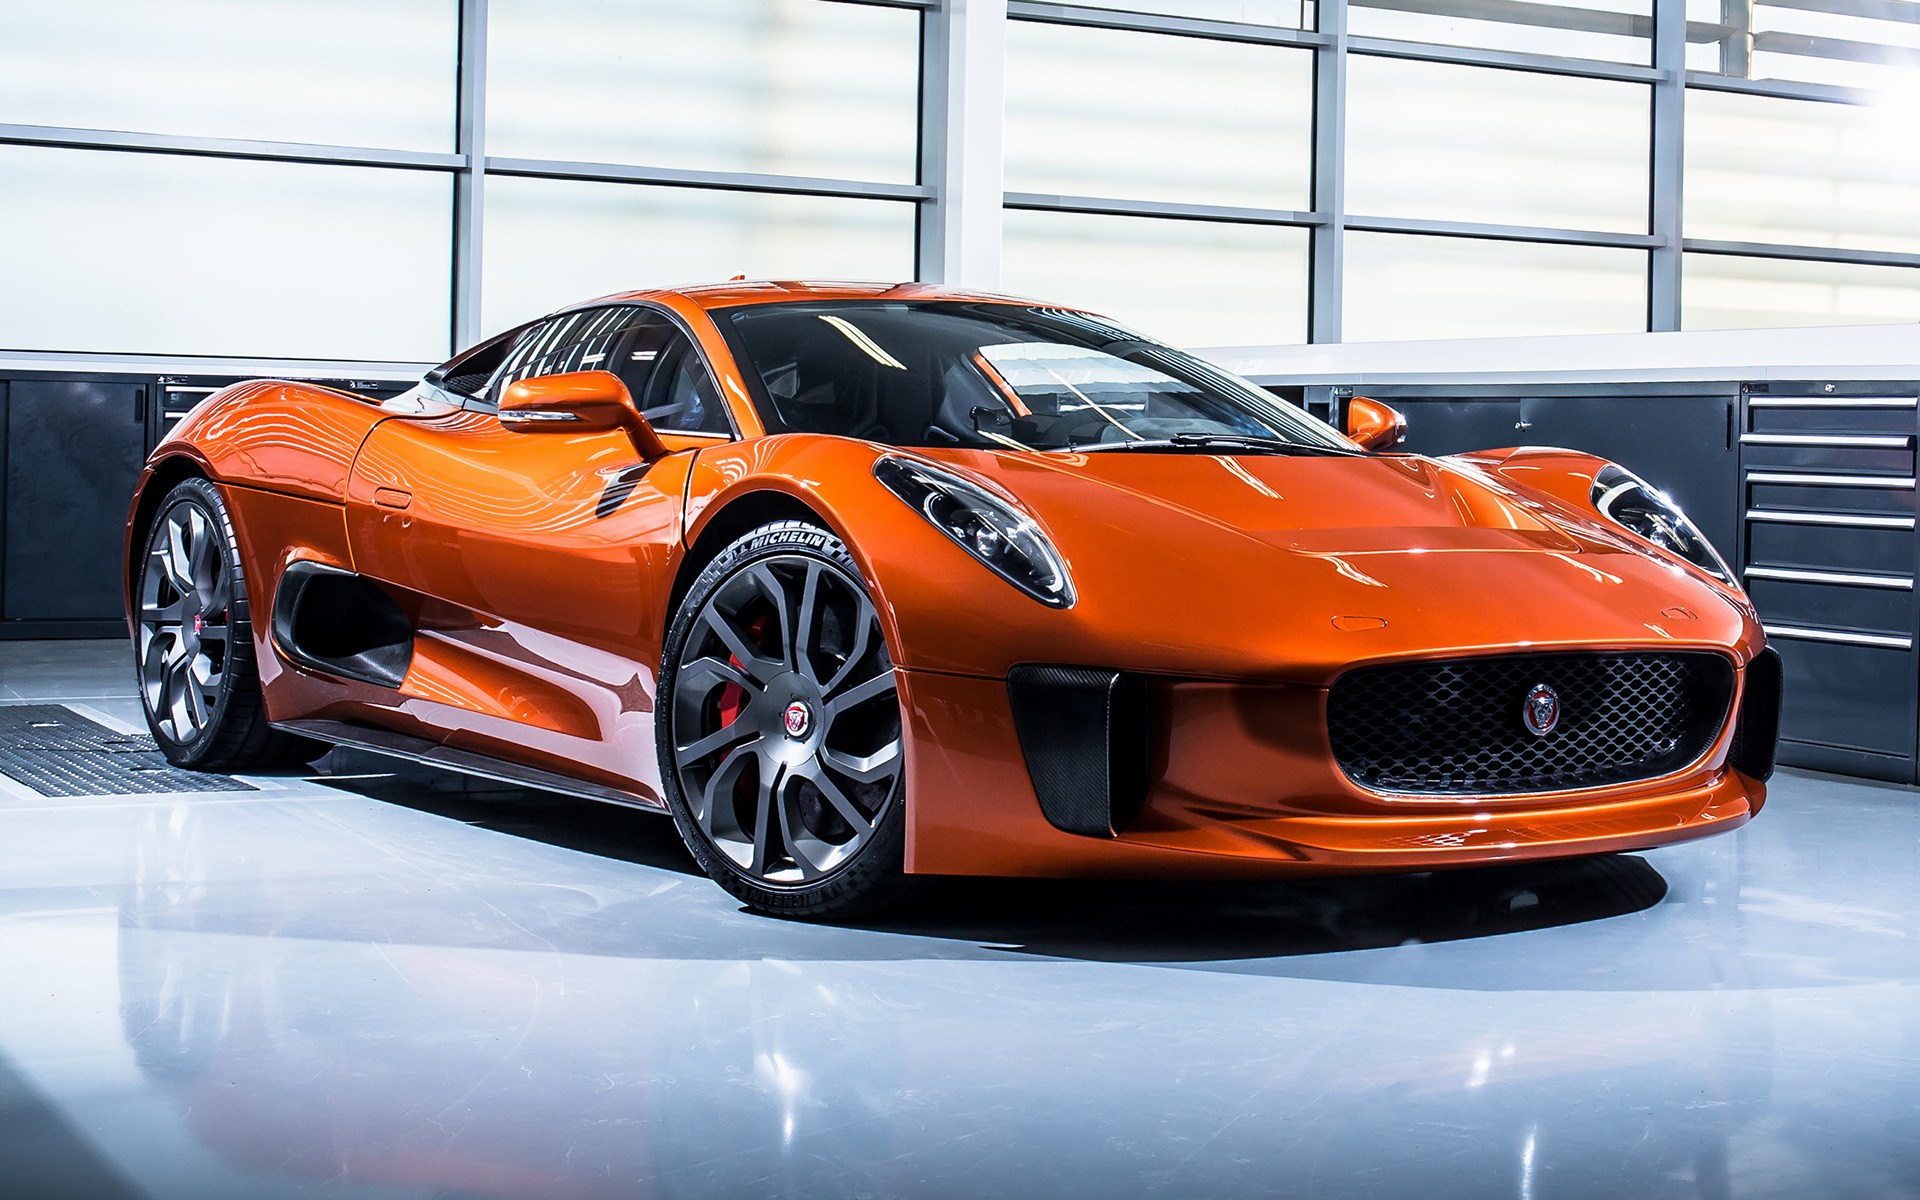 Lamborghini Cars Wallpapers 2013 Jaguar C X75 007 Spectre 2015 Wallpapers And Hd Images